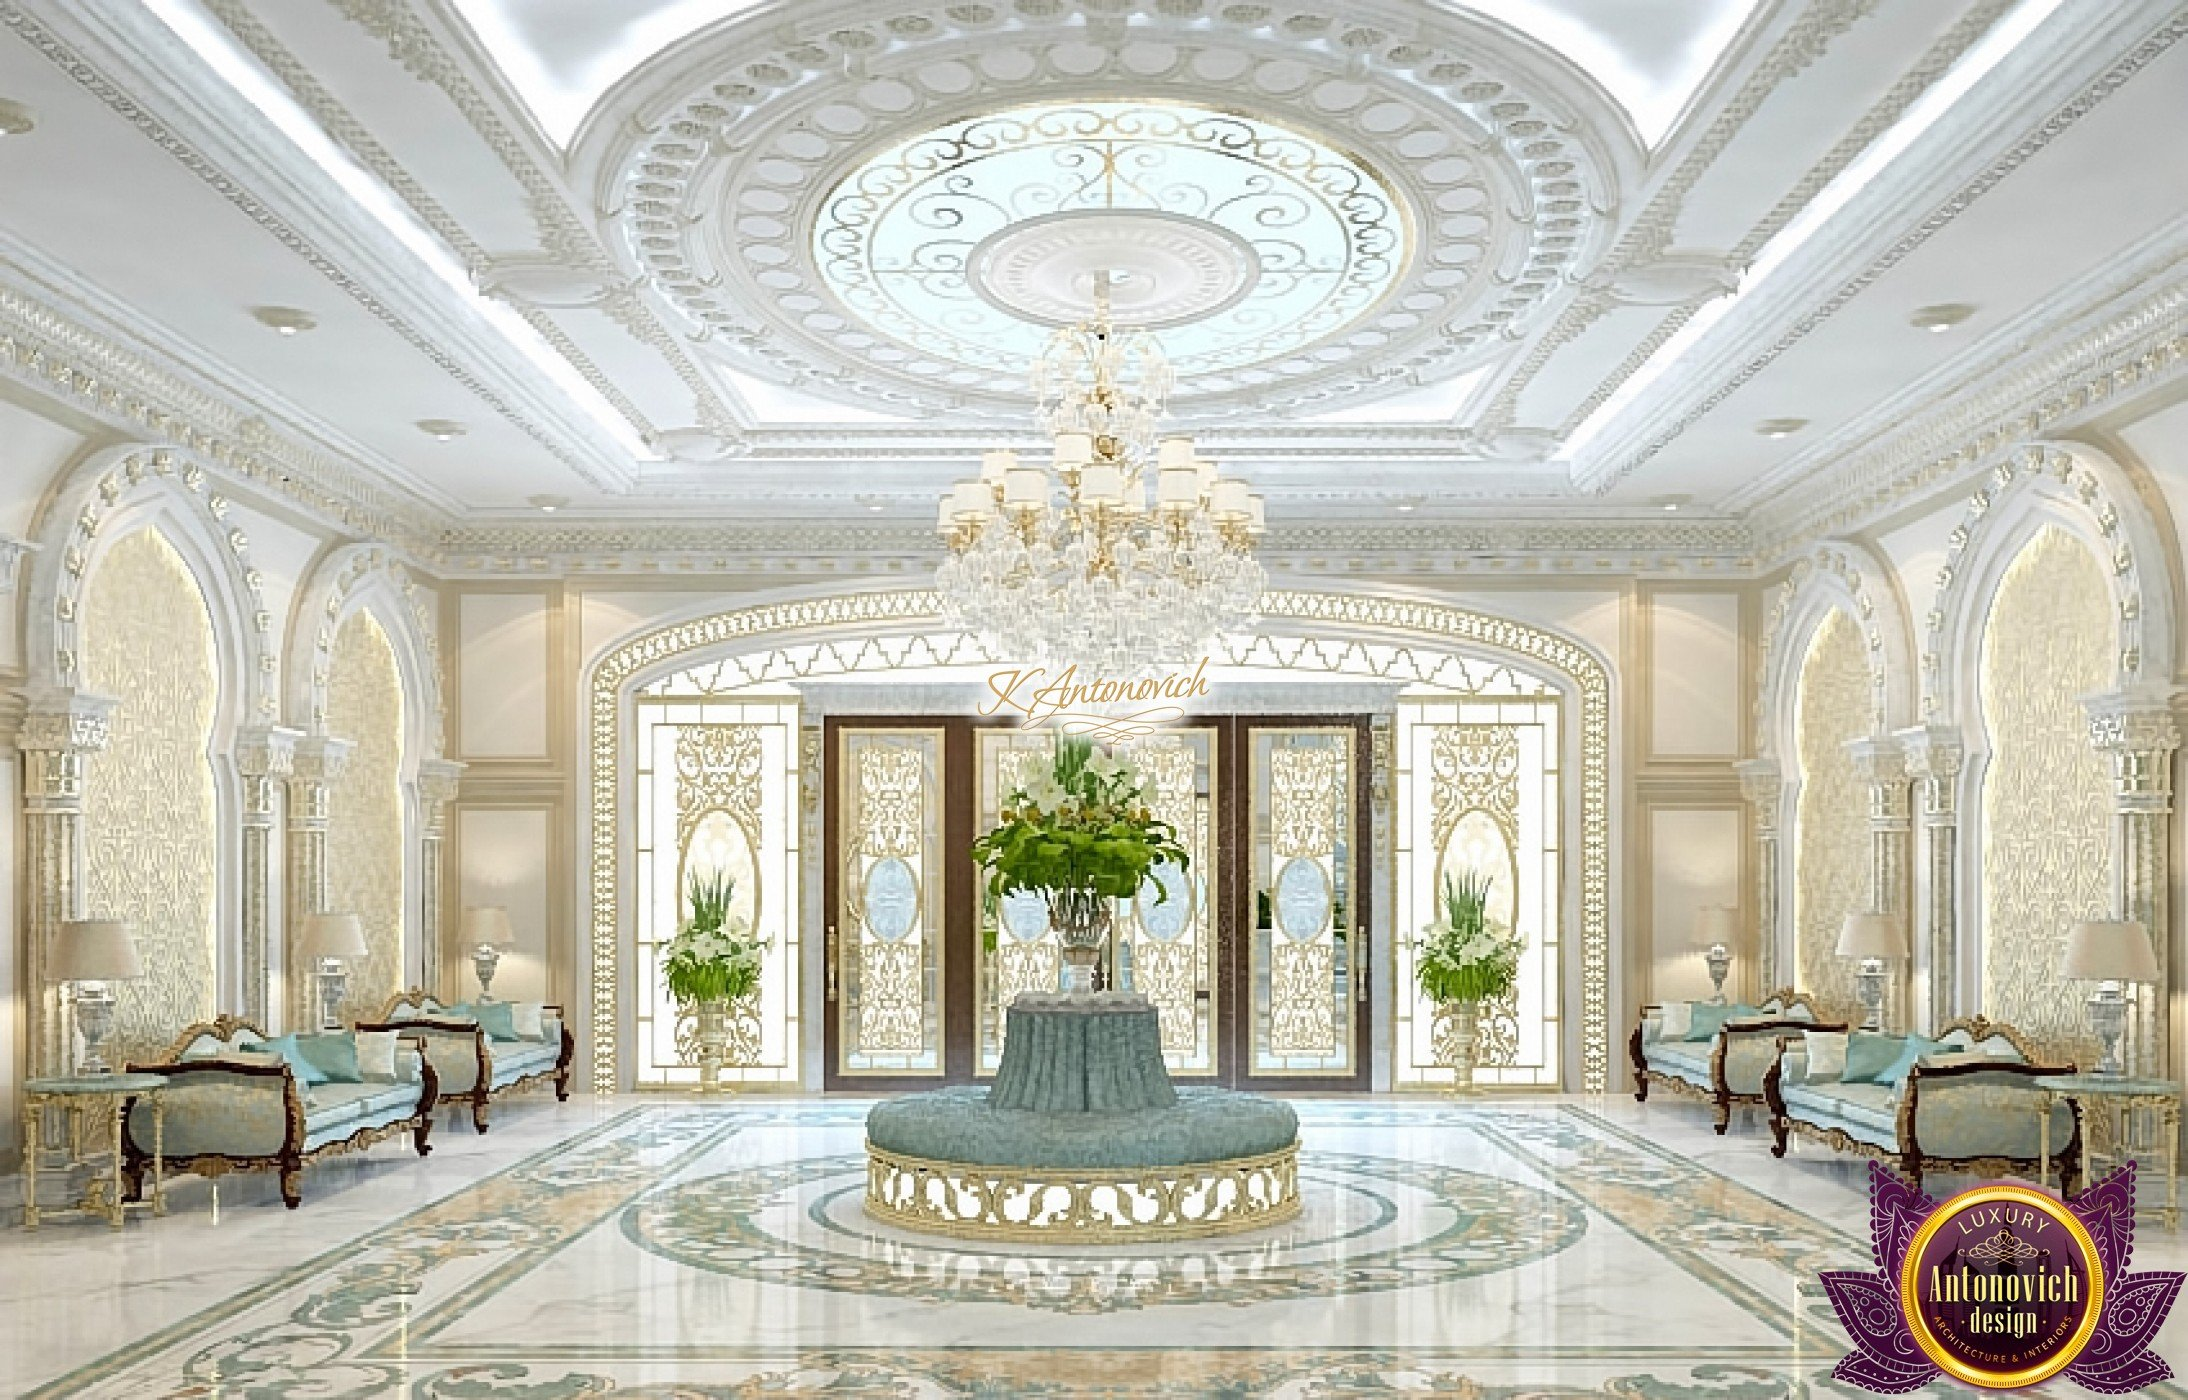 Luxury Home Entrance Luxury Royal Main Entrance Design